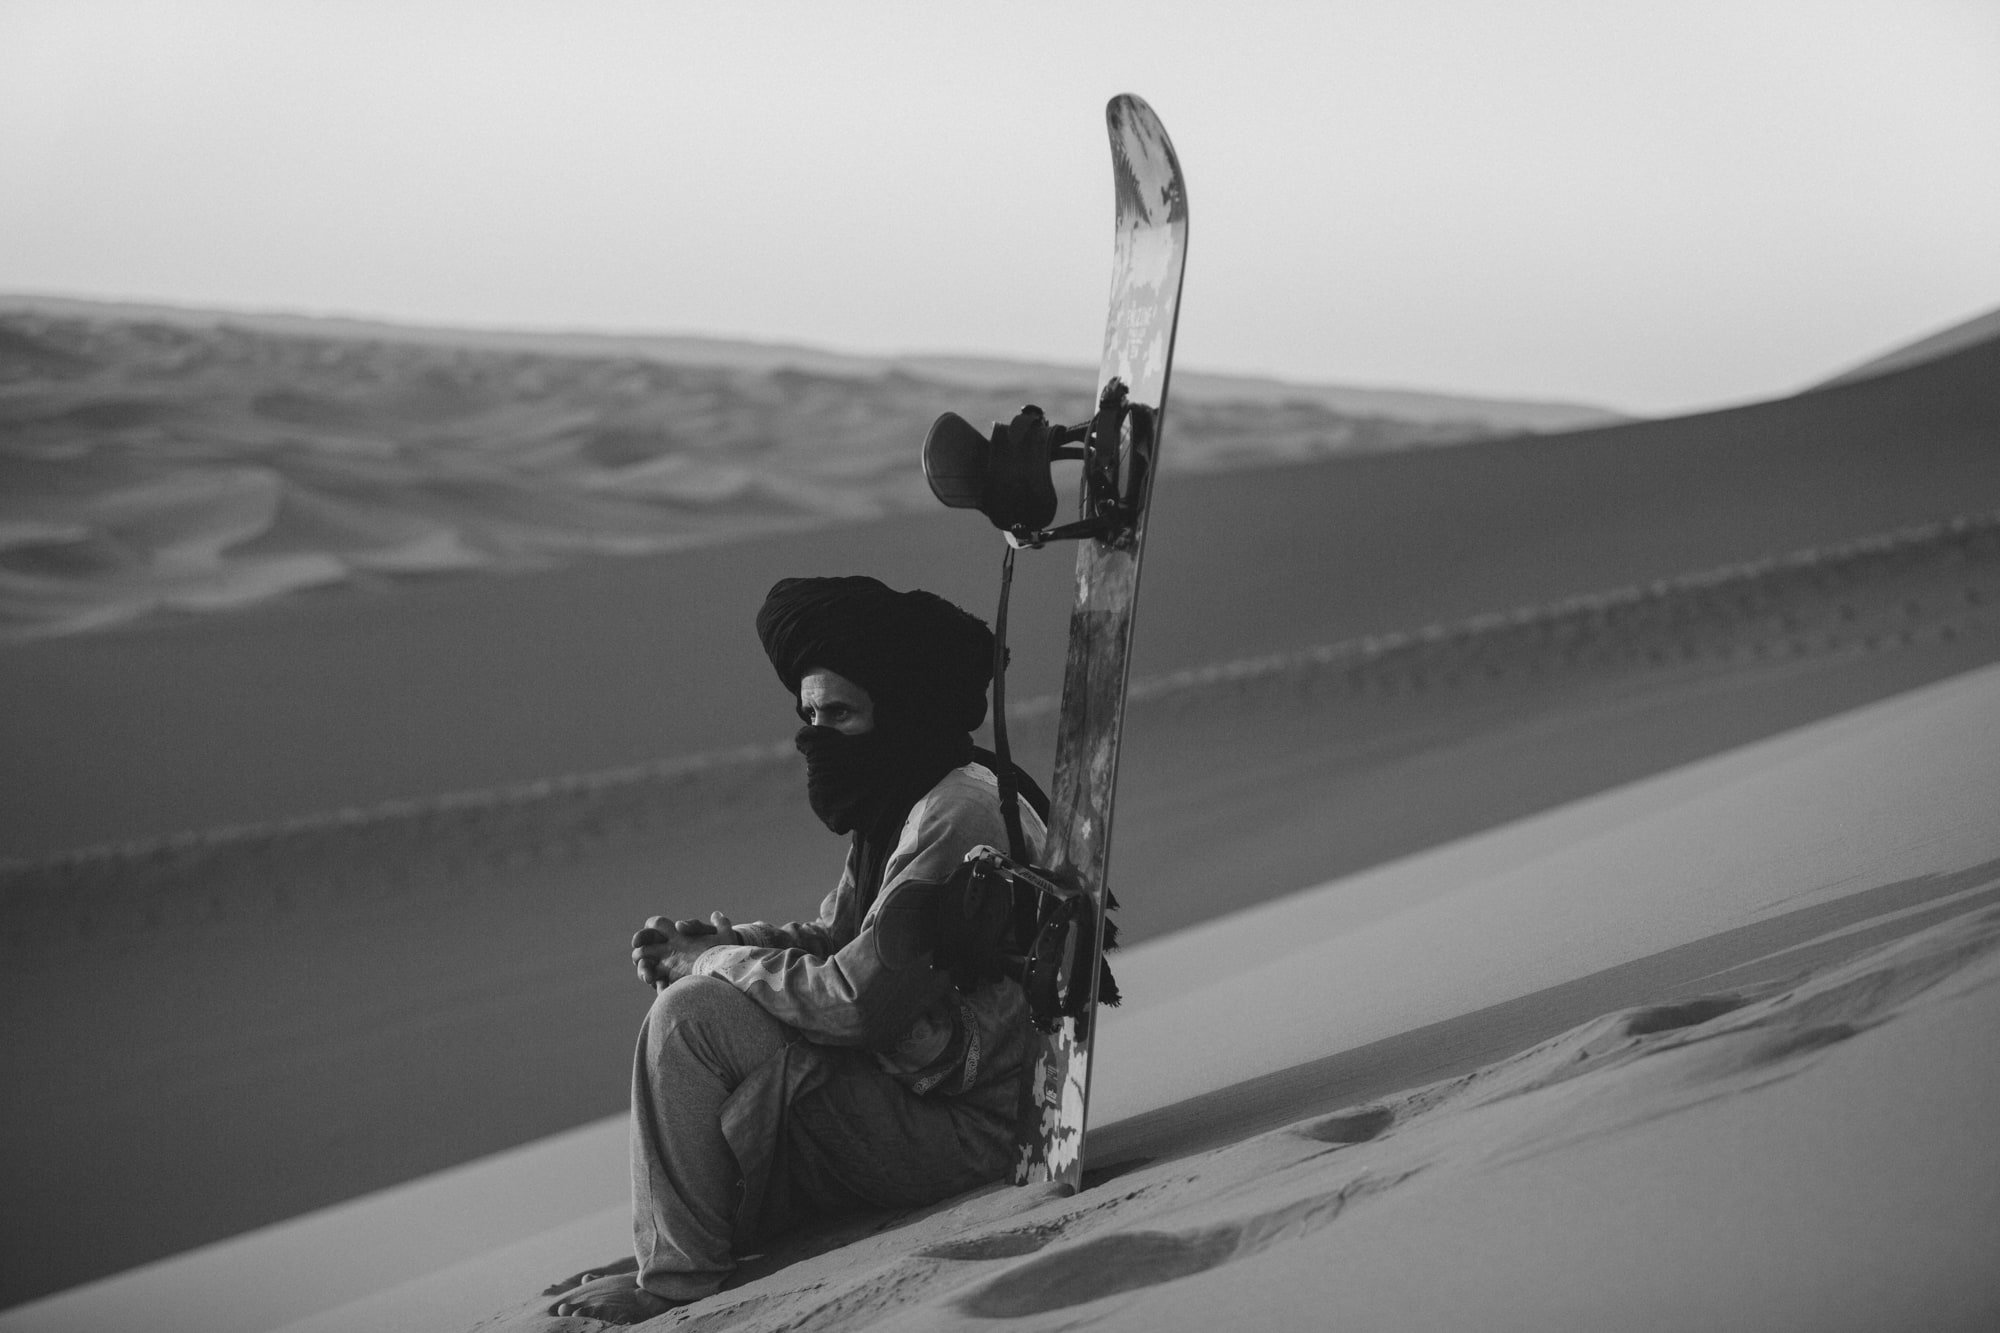 Sandboarding Instructor with Sandboard Sitting on Sand Dune near the Nubia Desert Camp in Morocco